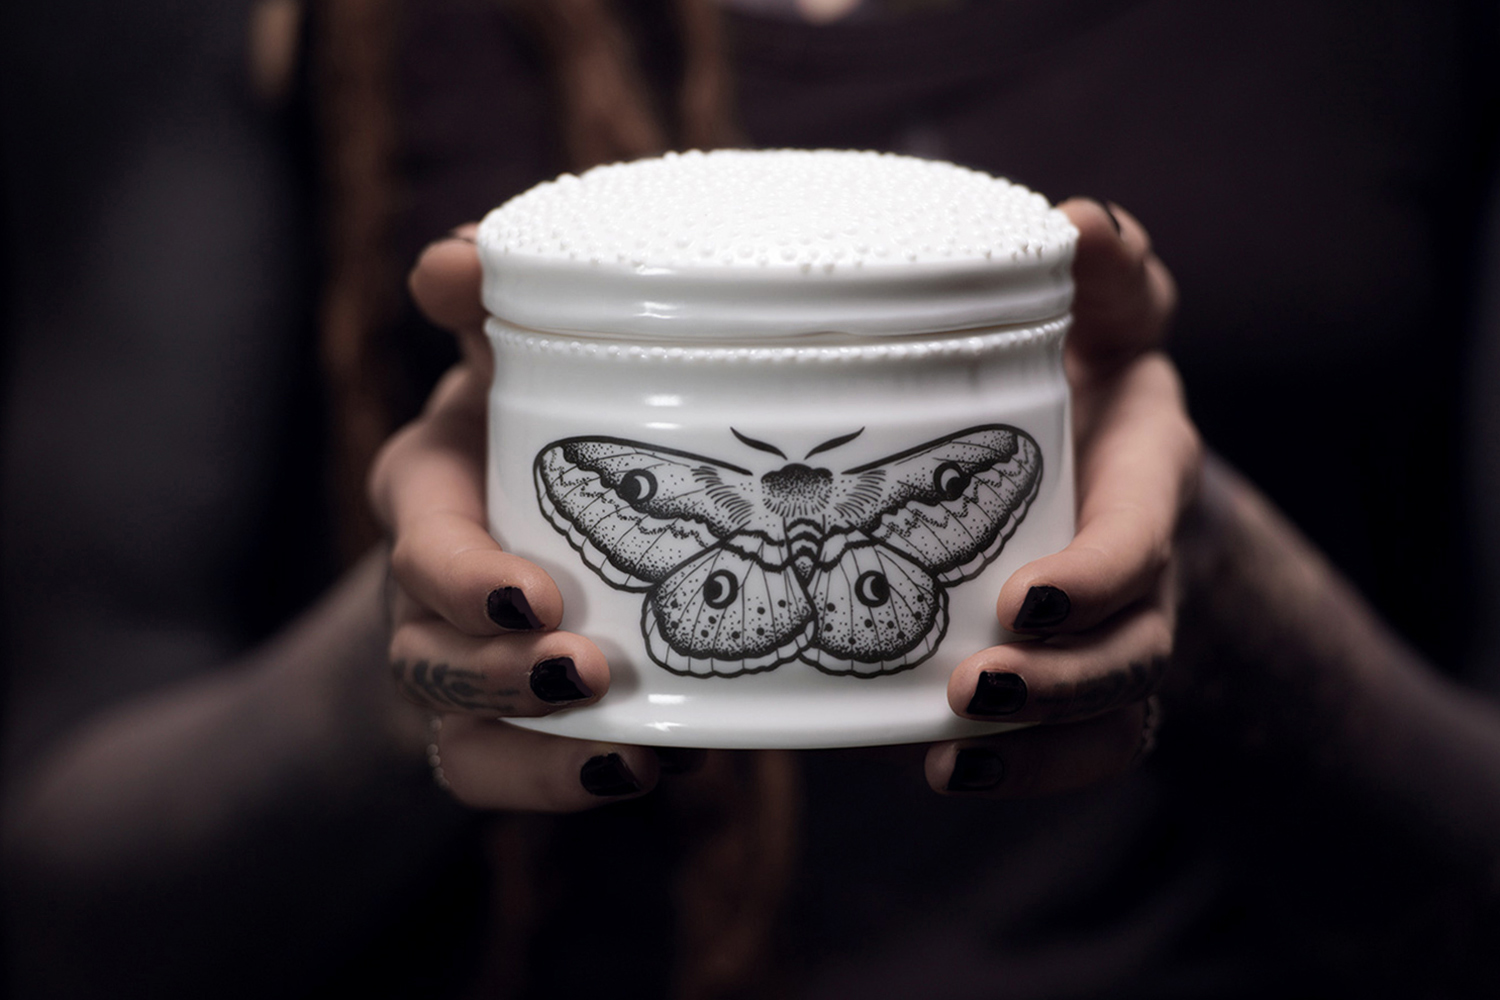 Berlin  Ceramic Tattoo Apothecary porcelain black moth butterfly tattoo pharmacy vase handamde slipcasted Antikapratika.jpg